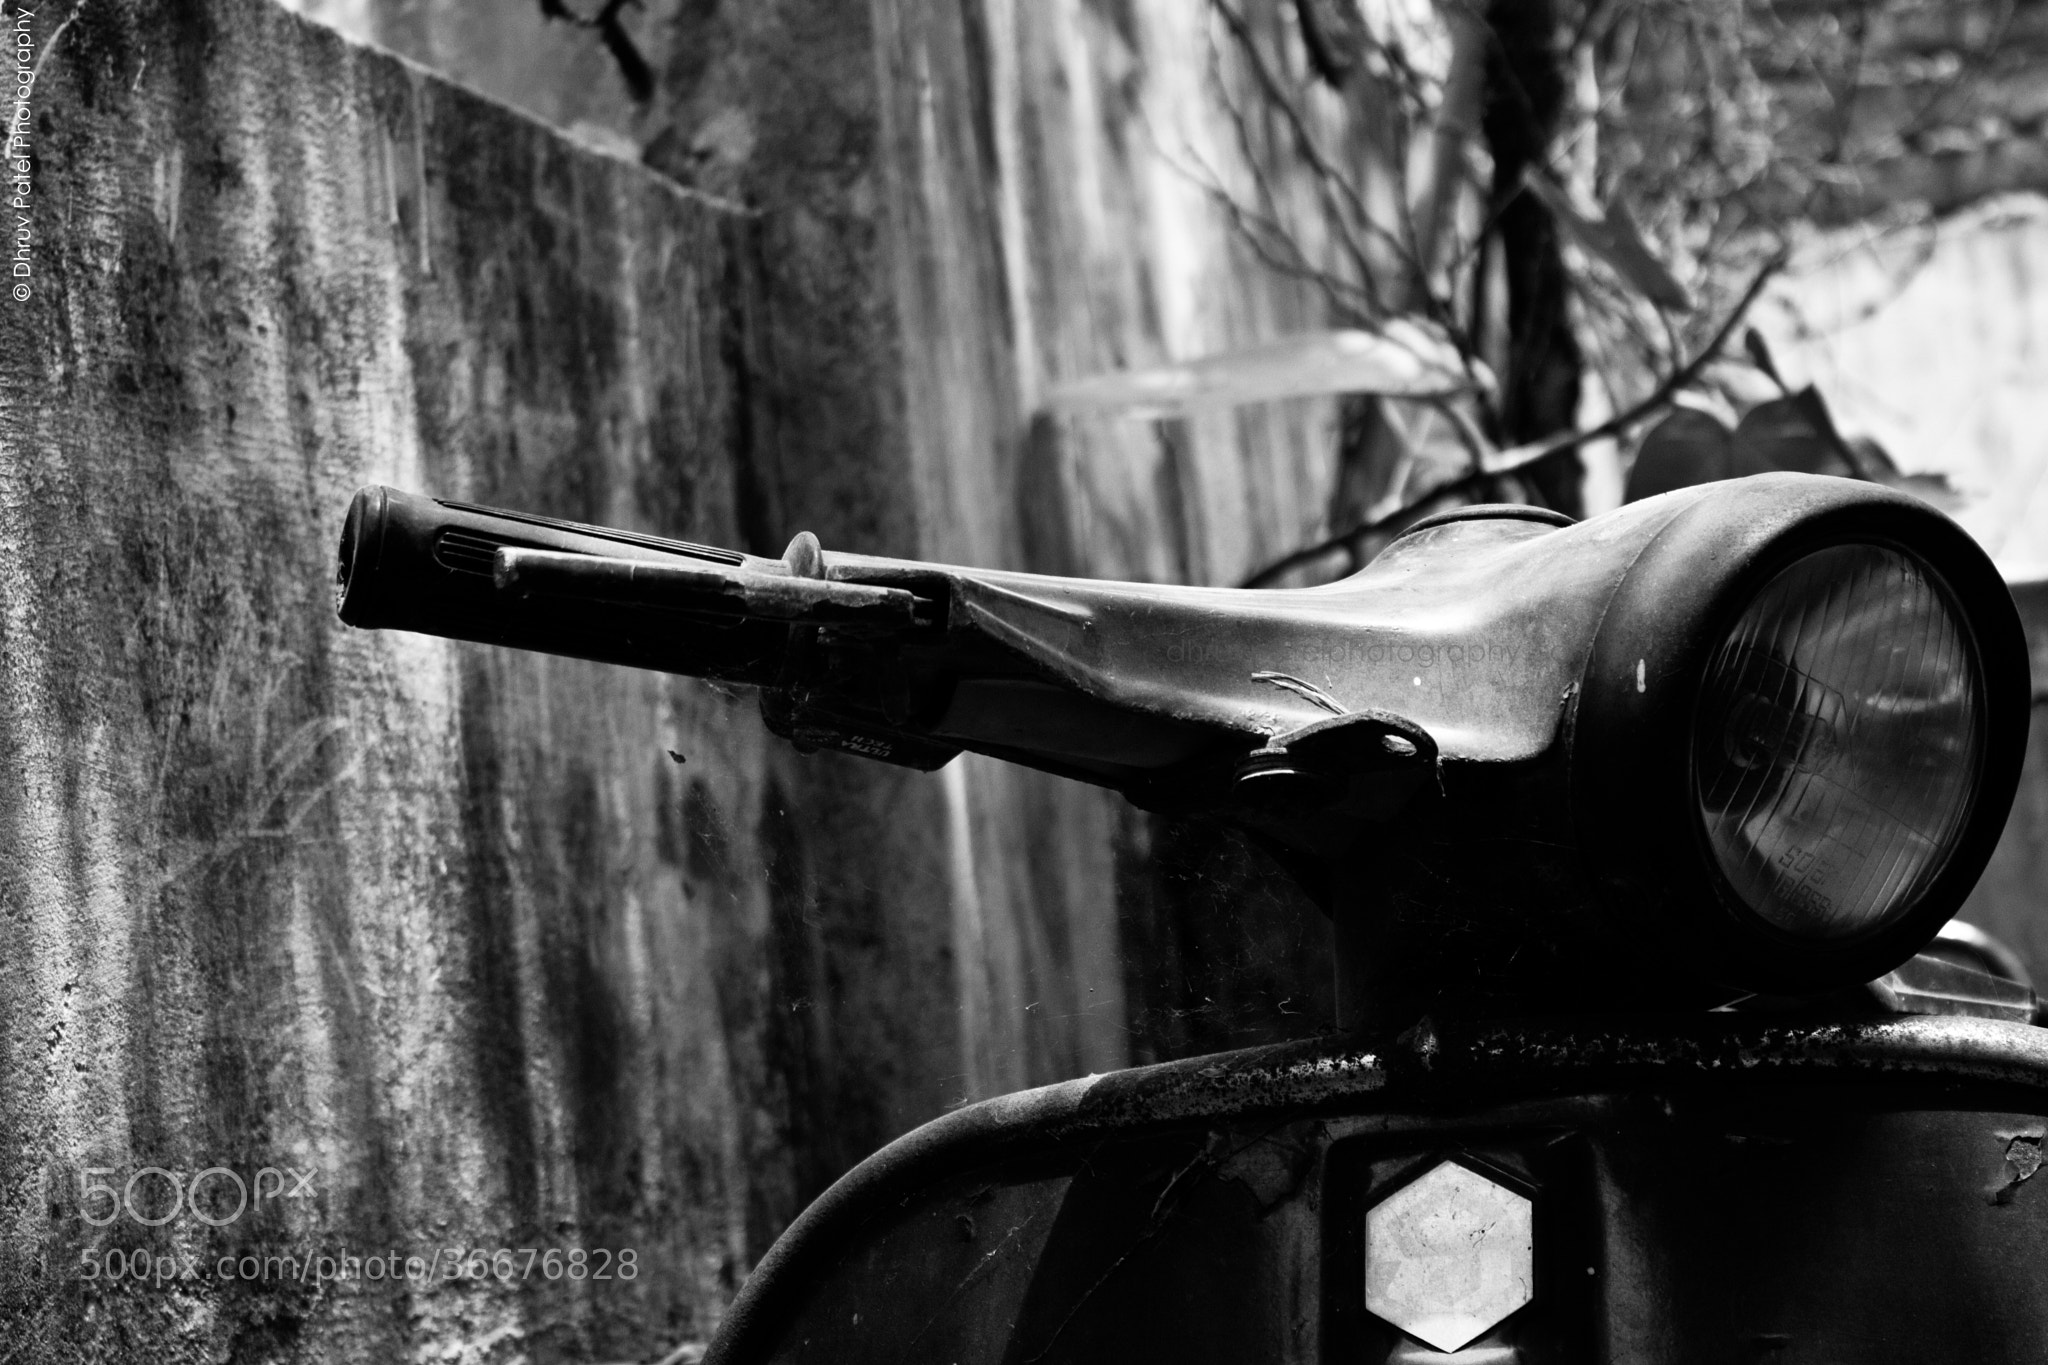 Photograph Retro Scooter by Dhruv Patel on 500px